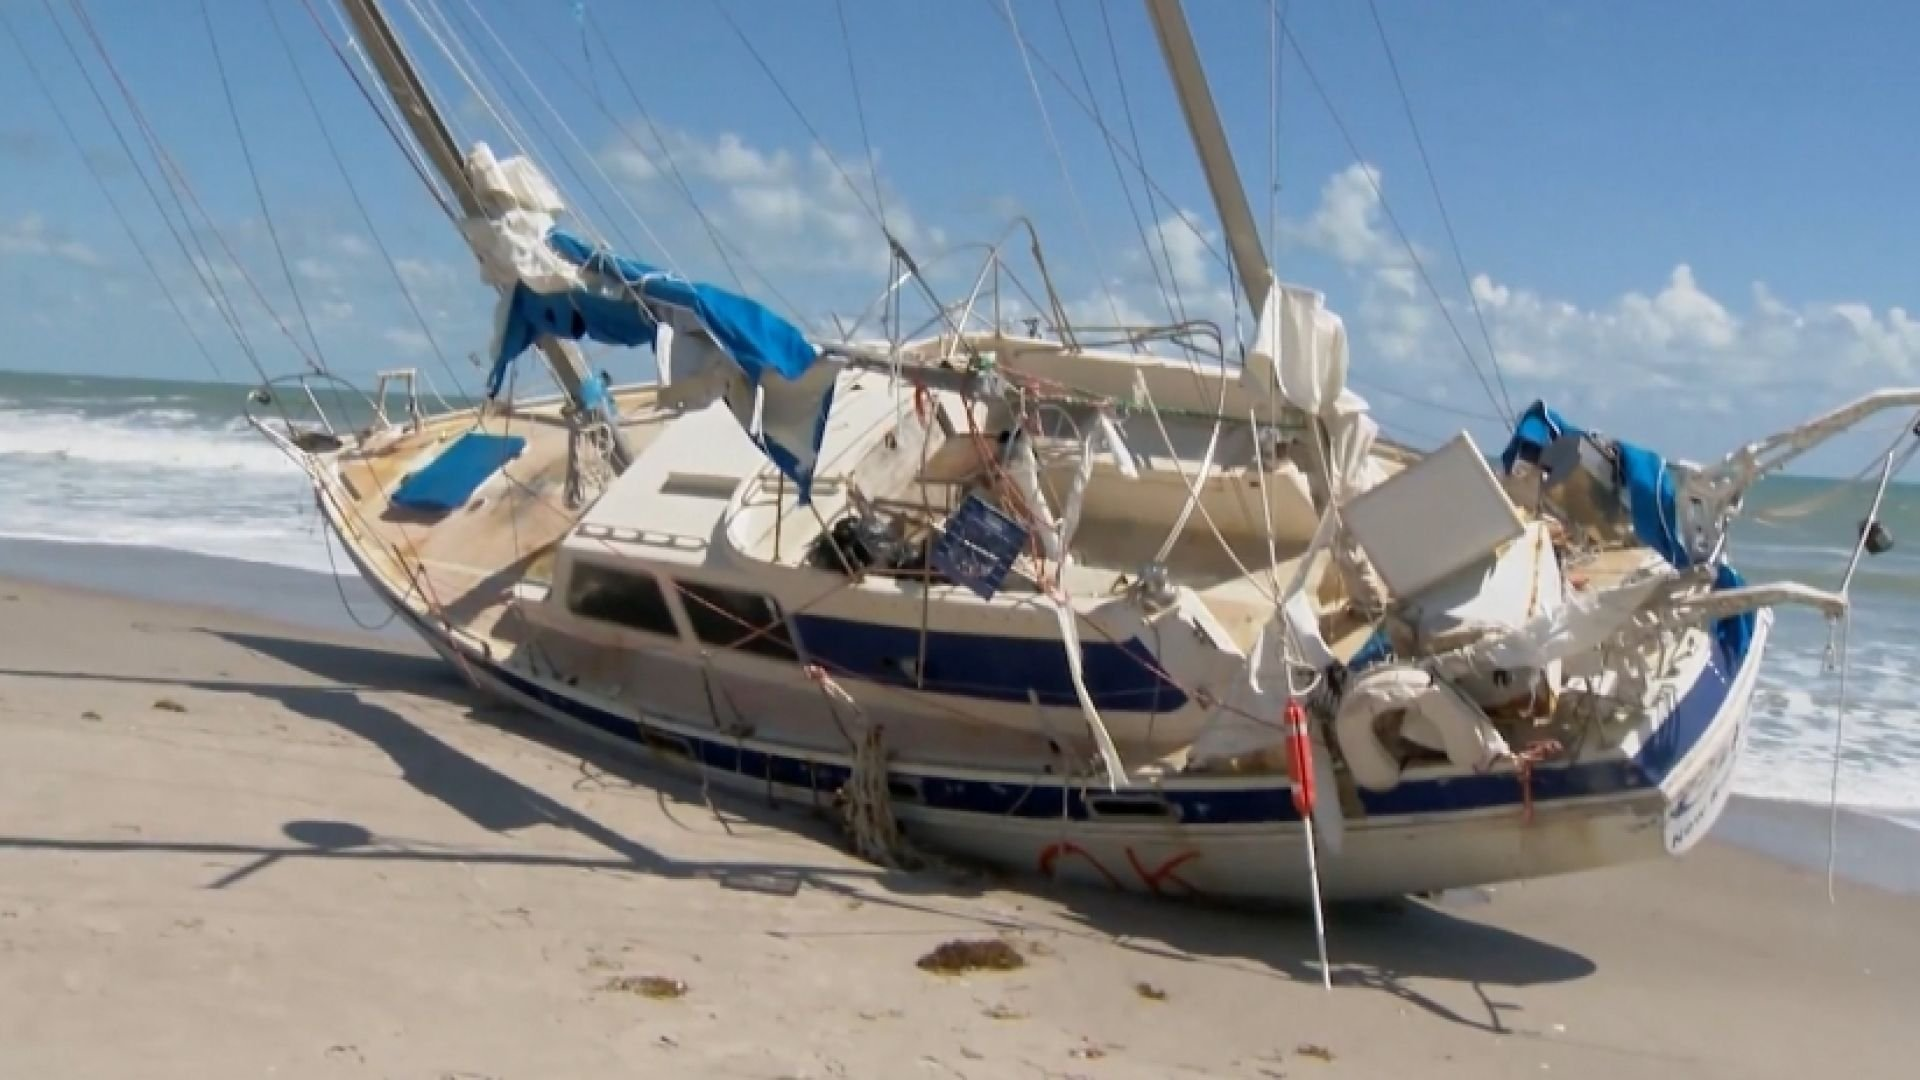 Ship blown hundreds of miles by Hurricane Irma